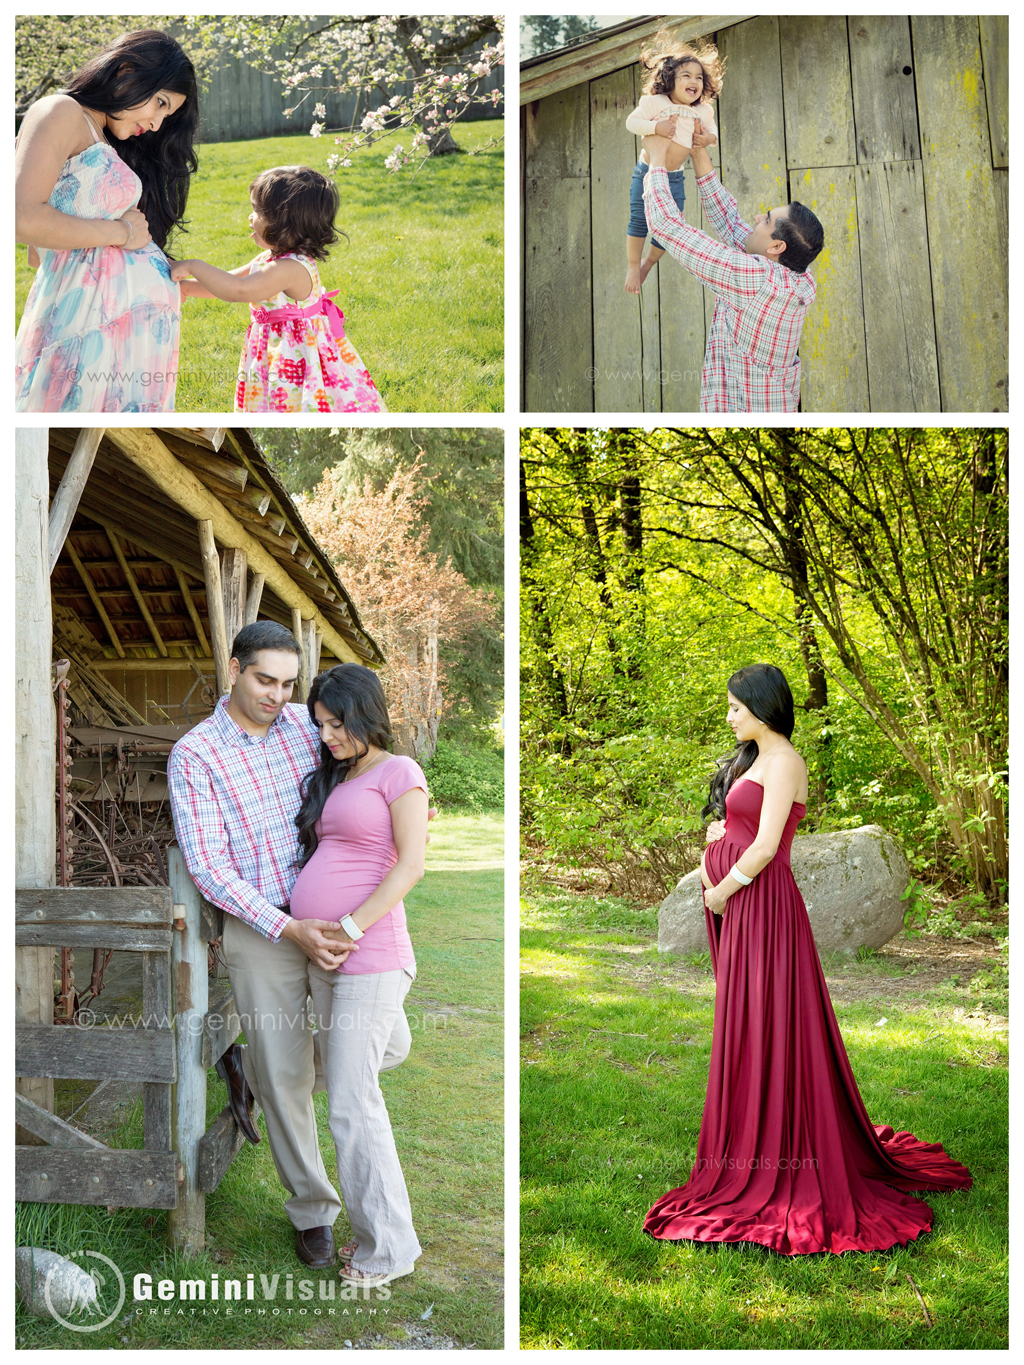 Beautiful outdoor maternity photography by Gemini Visuals Creative Photography